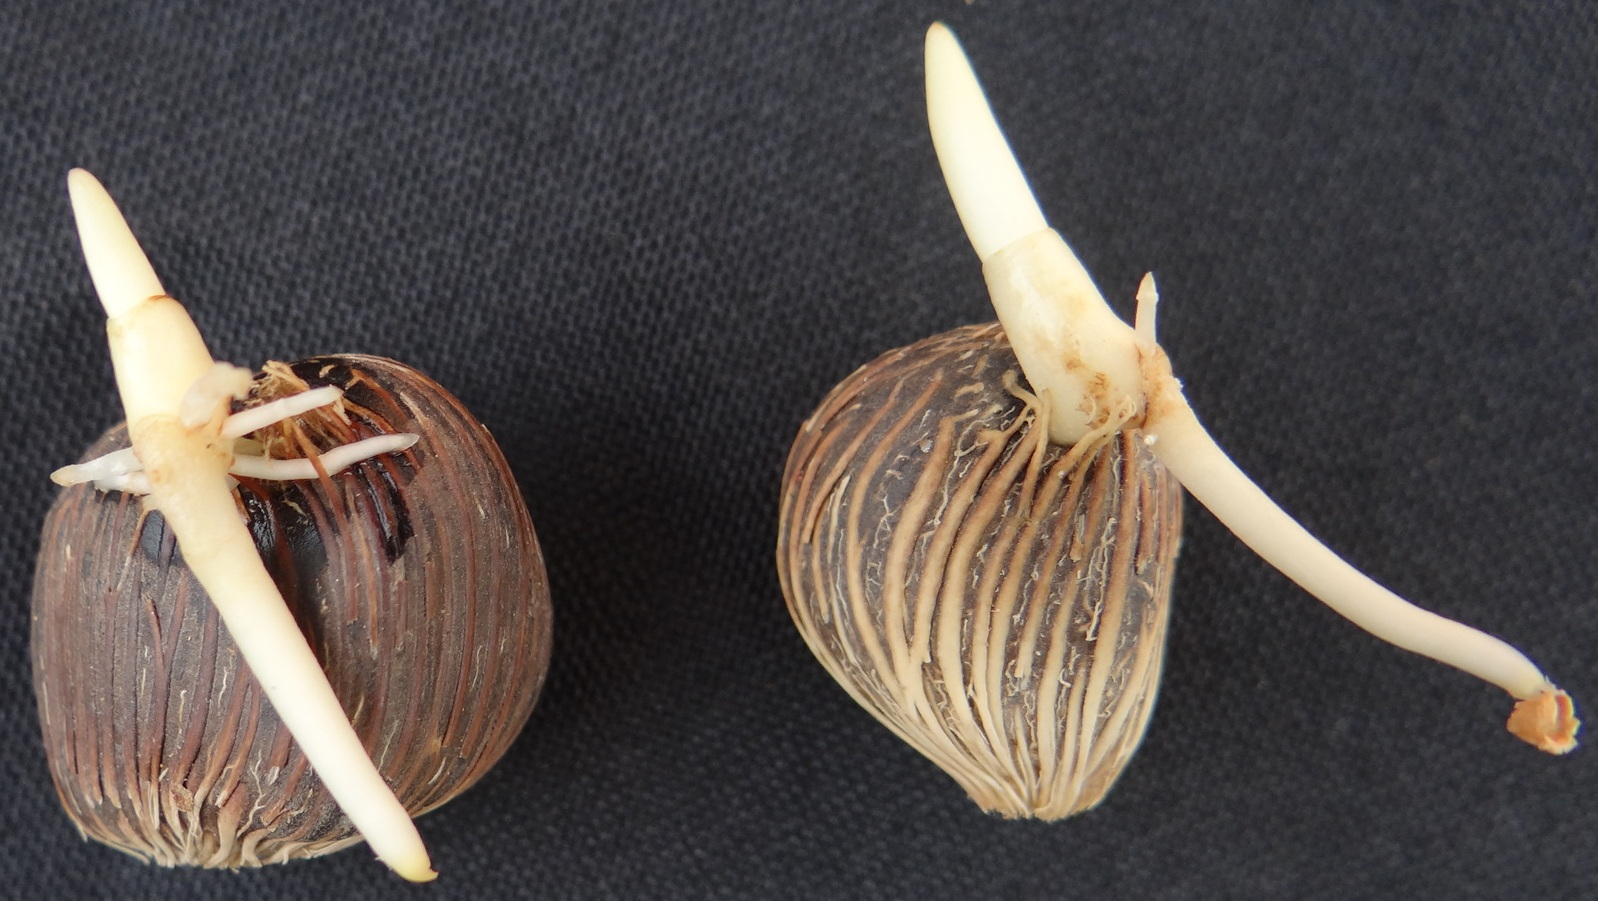 Normally germinated seeds of Palm